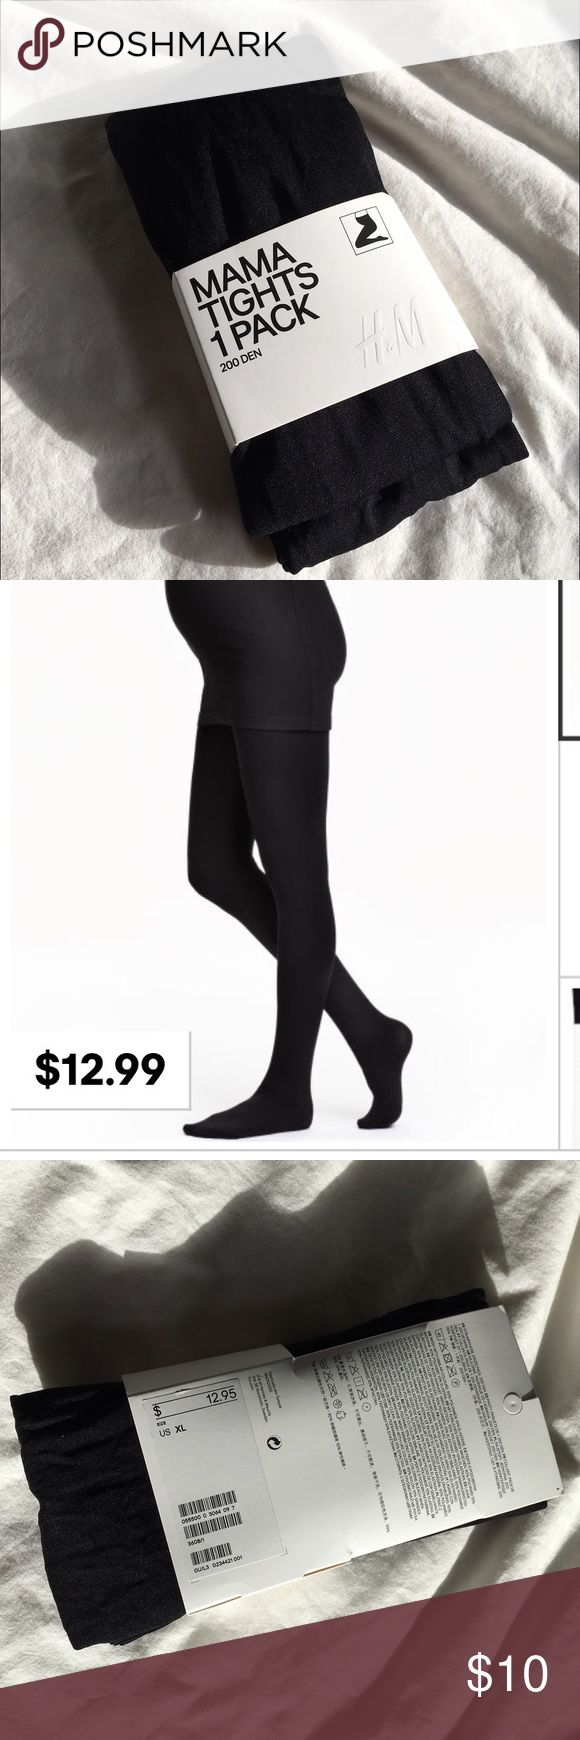 Great tights for over bump from H&M    NWT H&M Mama Black Tights - Maternity New with tags because I missed the return window. These 200 denier black tights will be great with dresses and tunics through the winter. Black H&M maternity tights. H&M Accessories Hosiery & Socks